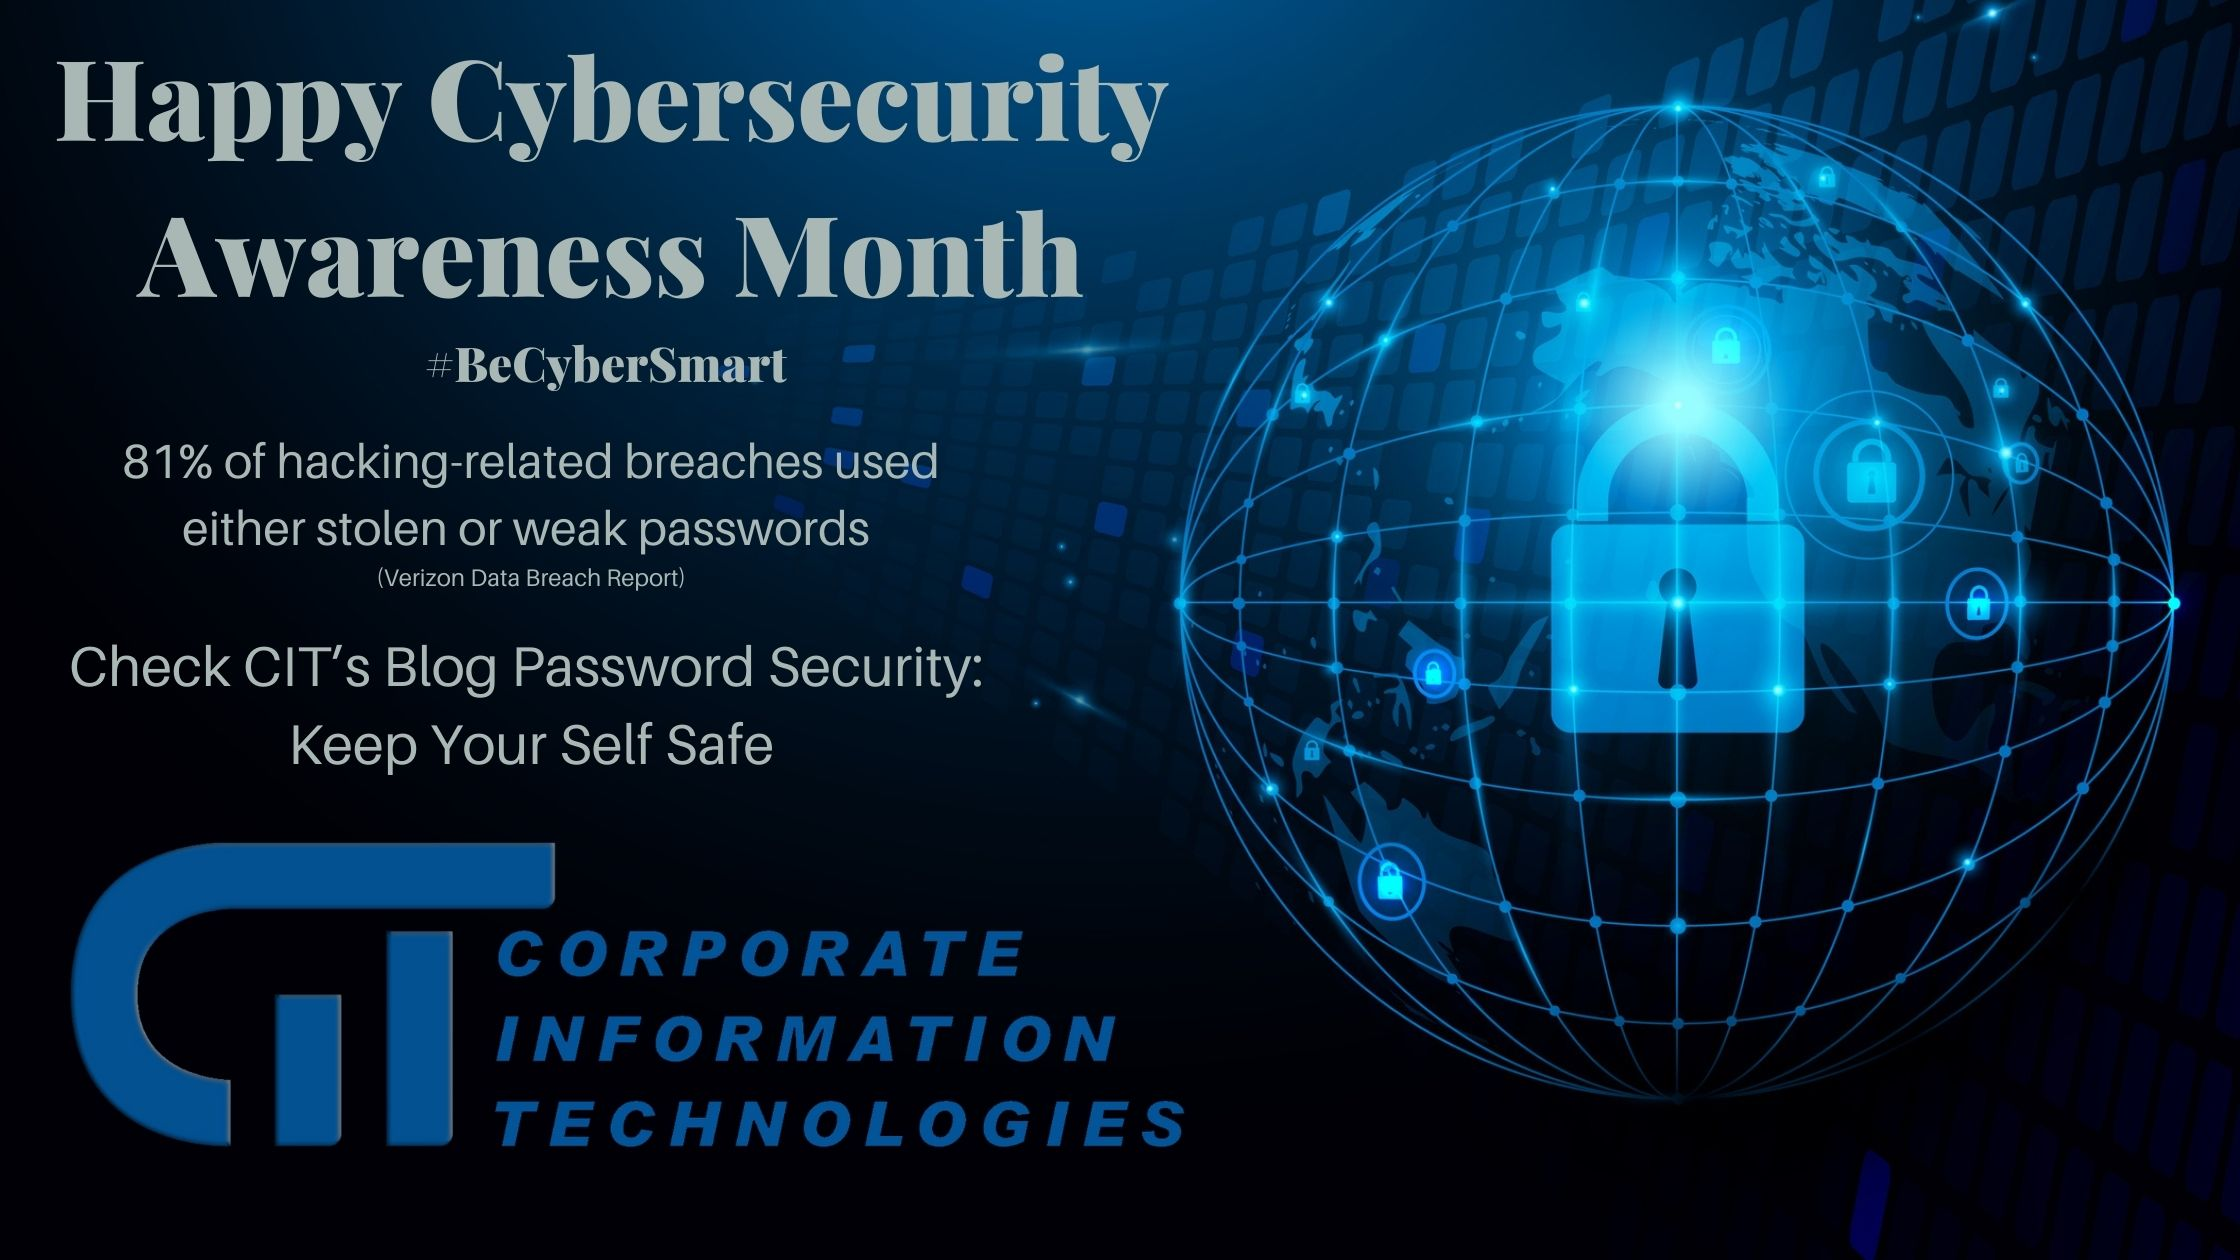 Happy Cybersecurity Awareness Month